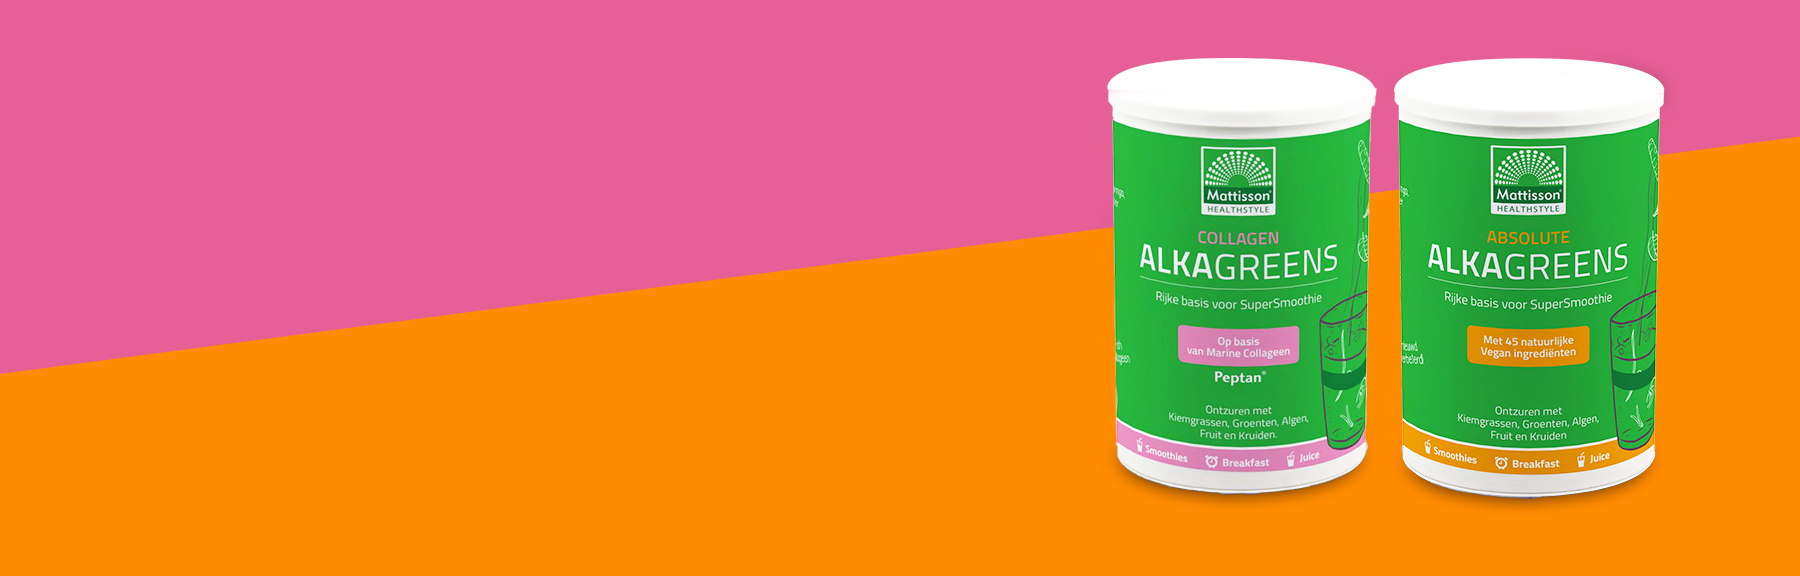 Zuur-base in Balans<br><strong>Shop AlkaGreens</strong>